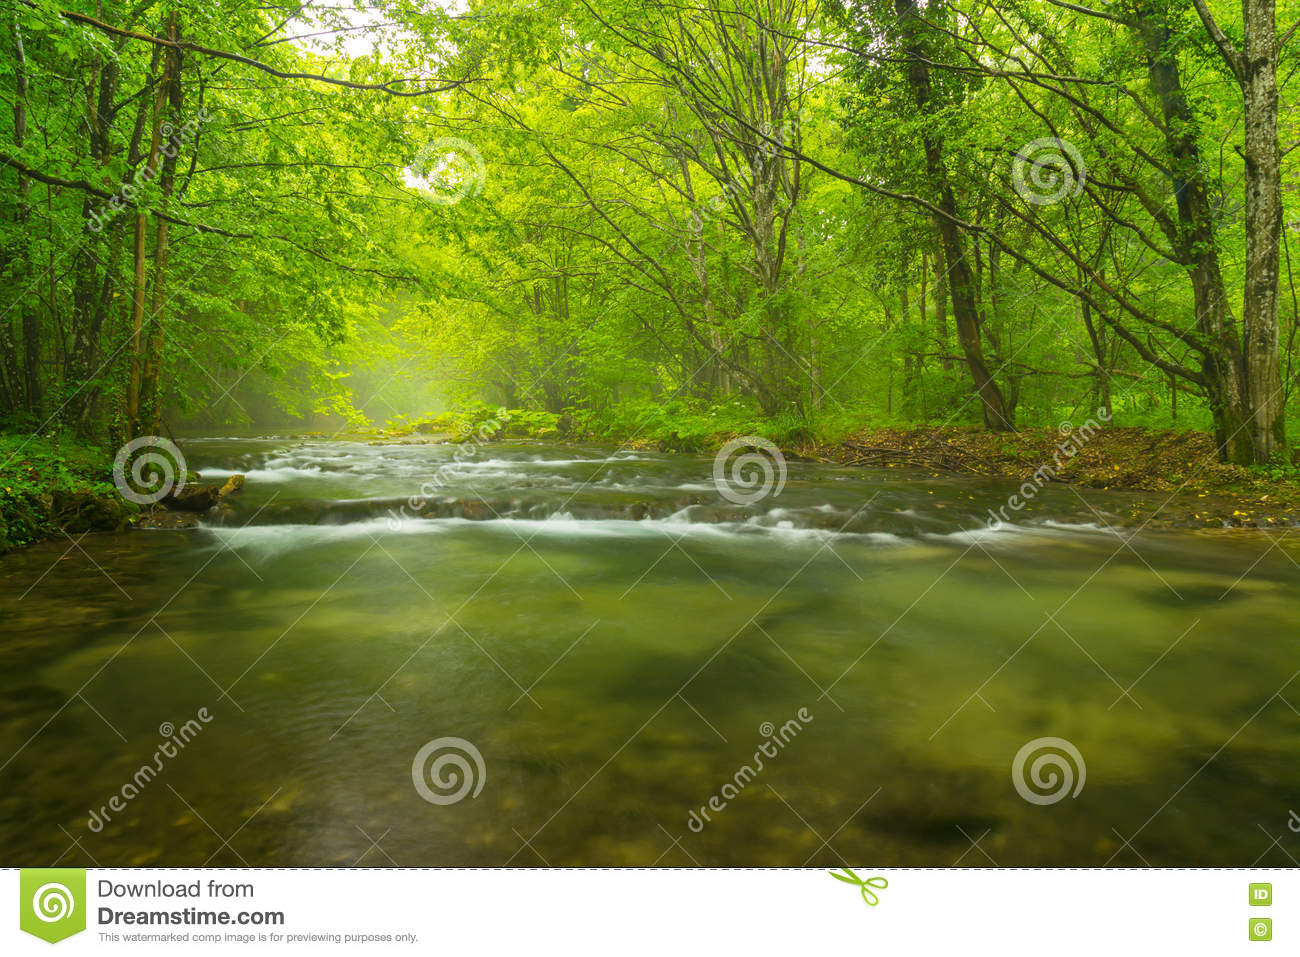 Misty Green Forest Nature River Beautiful 1ziw: Misty Wild River In The Forest In Spring Stock Photo